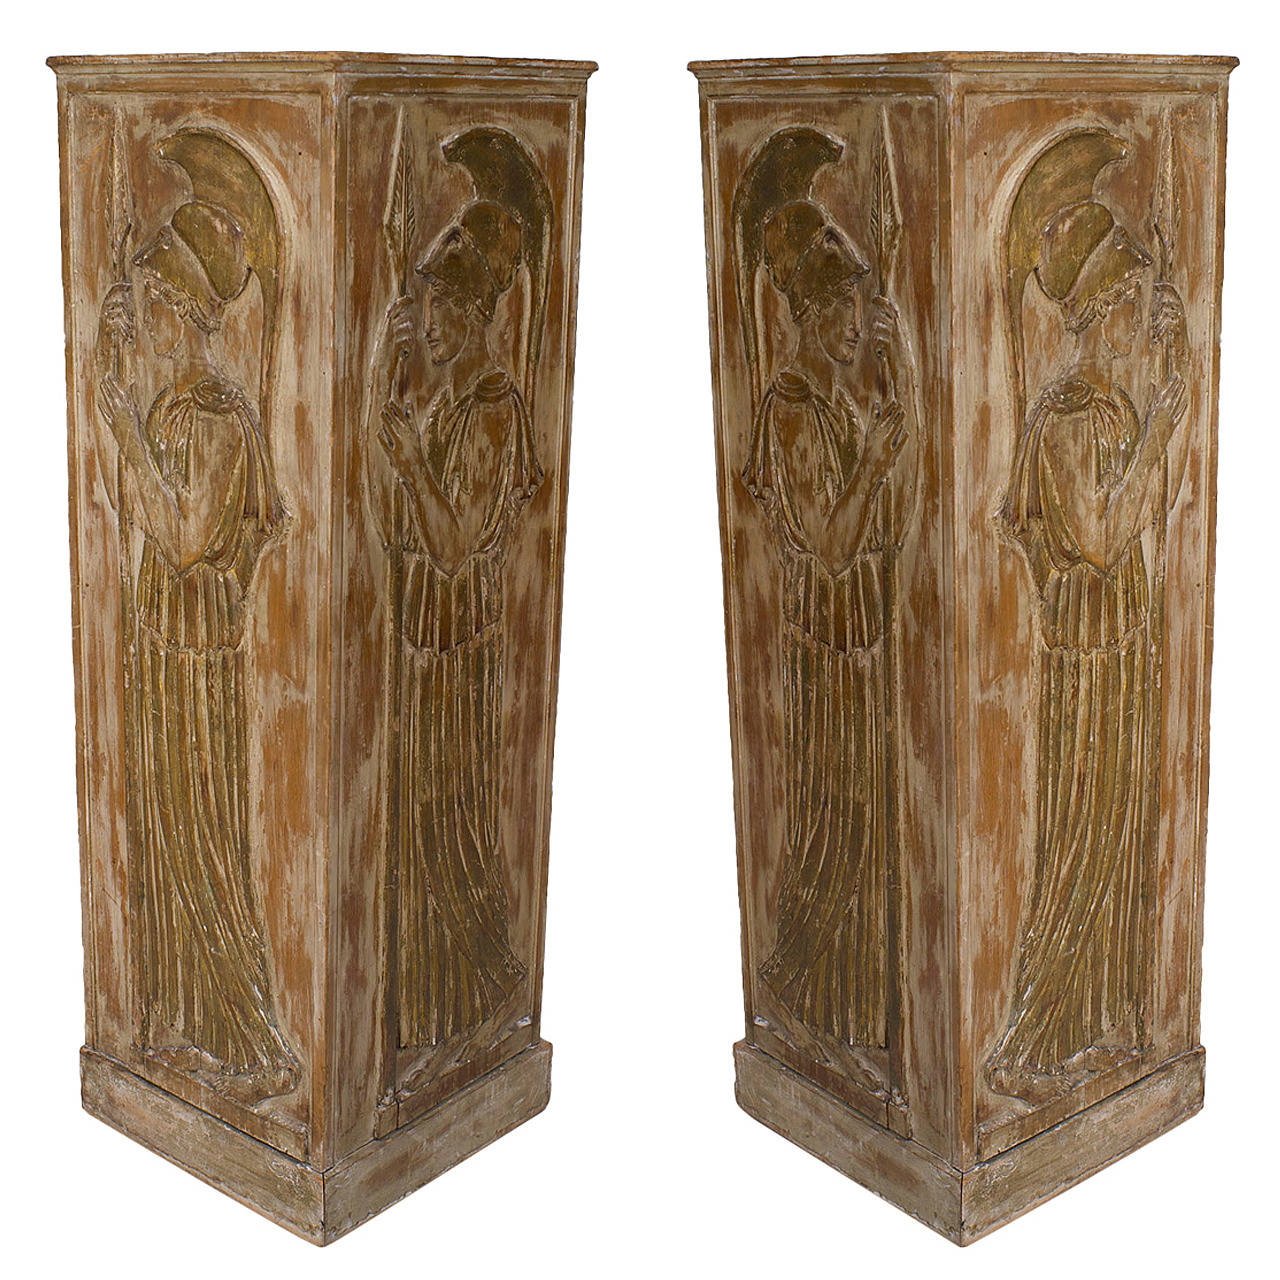 Large Pair of 1940s Italian Neoclassical Style Pedestals Attributed to Palladio